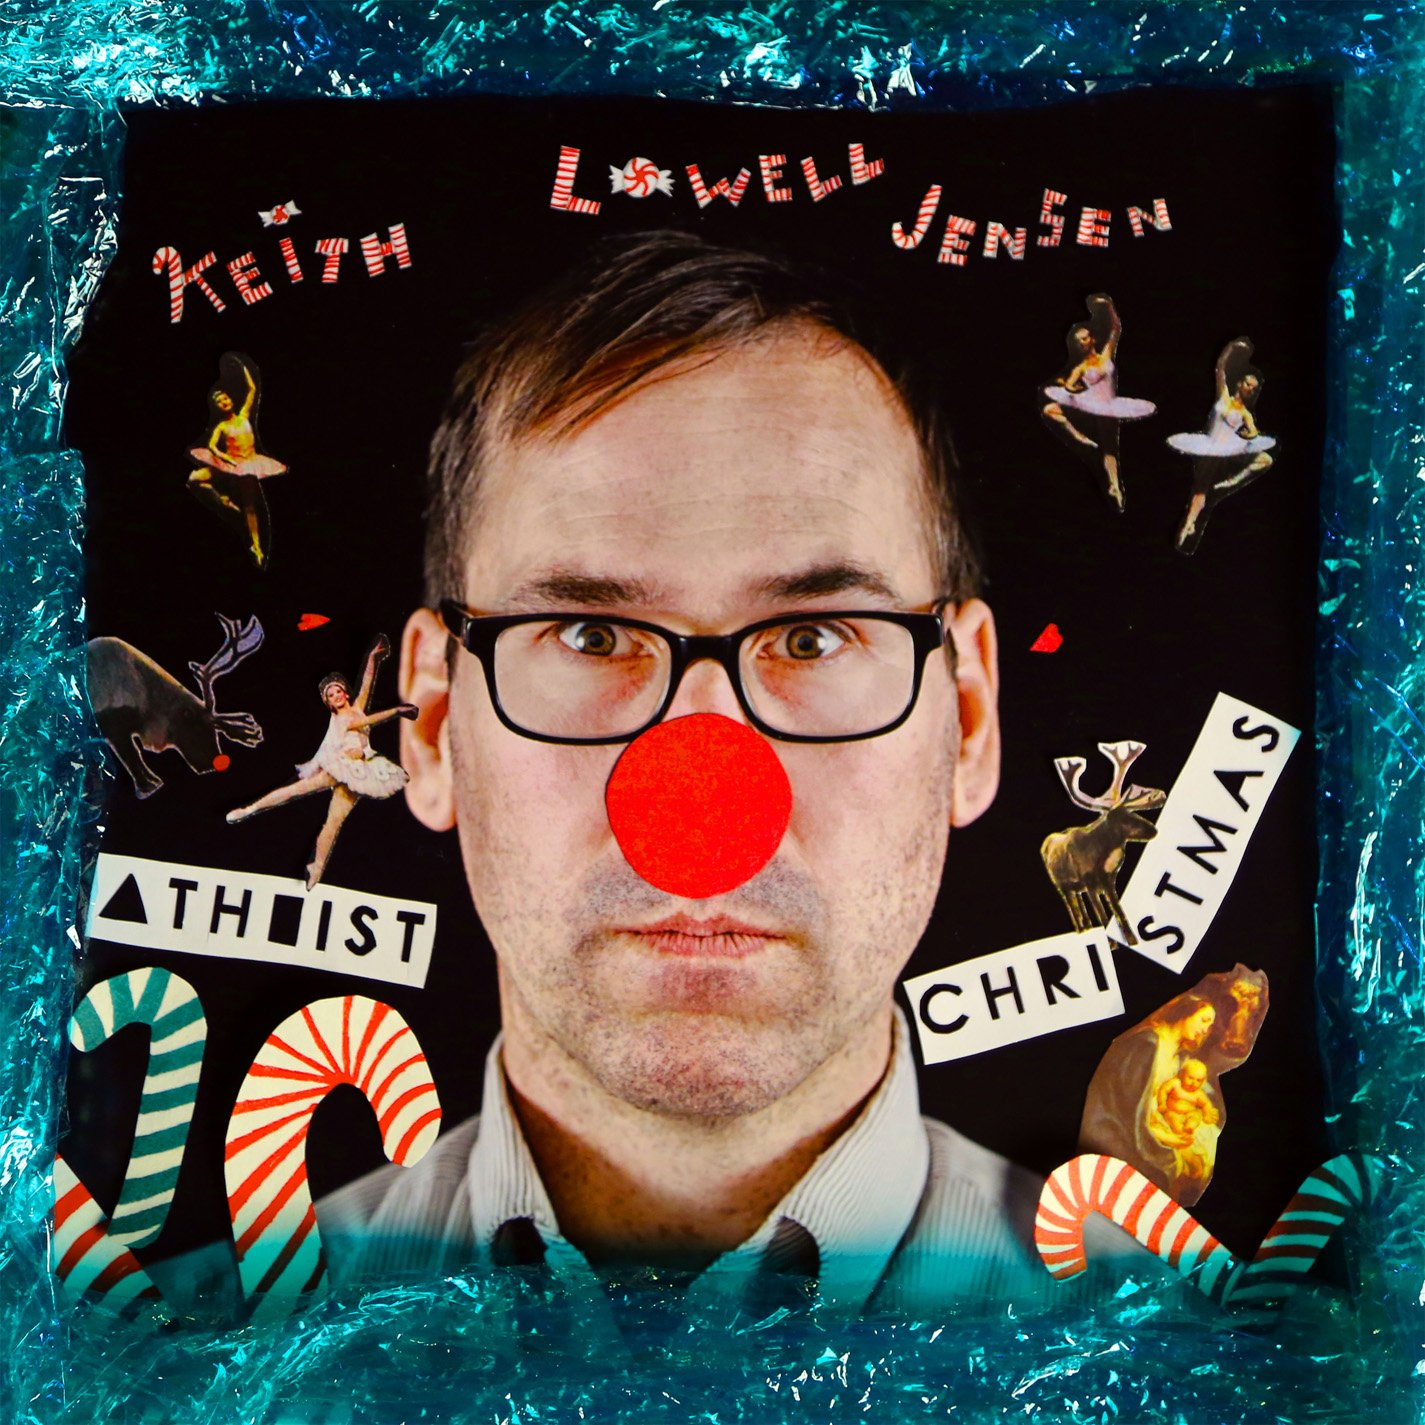 Keith Lowell Jensen - Atheist Christmas (CD with DVD) - Amazon.com Music